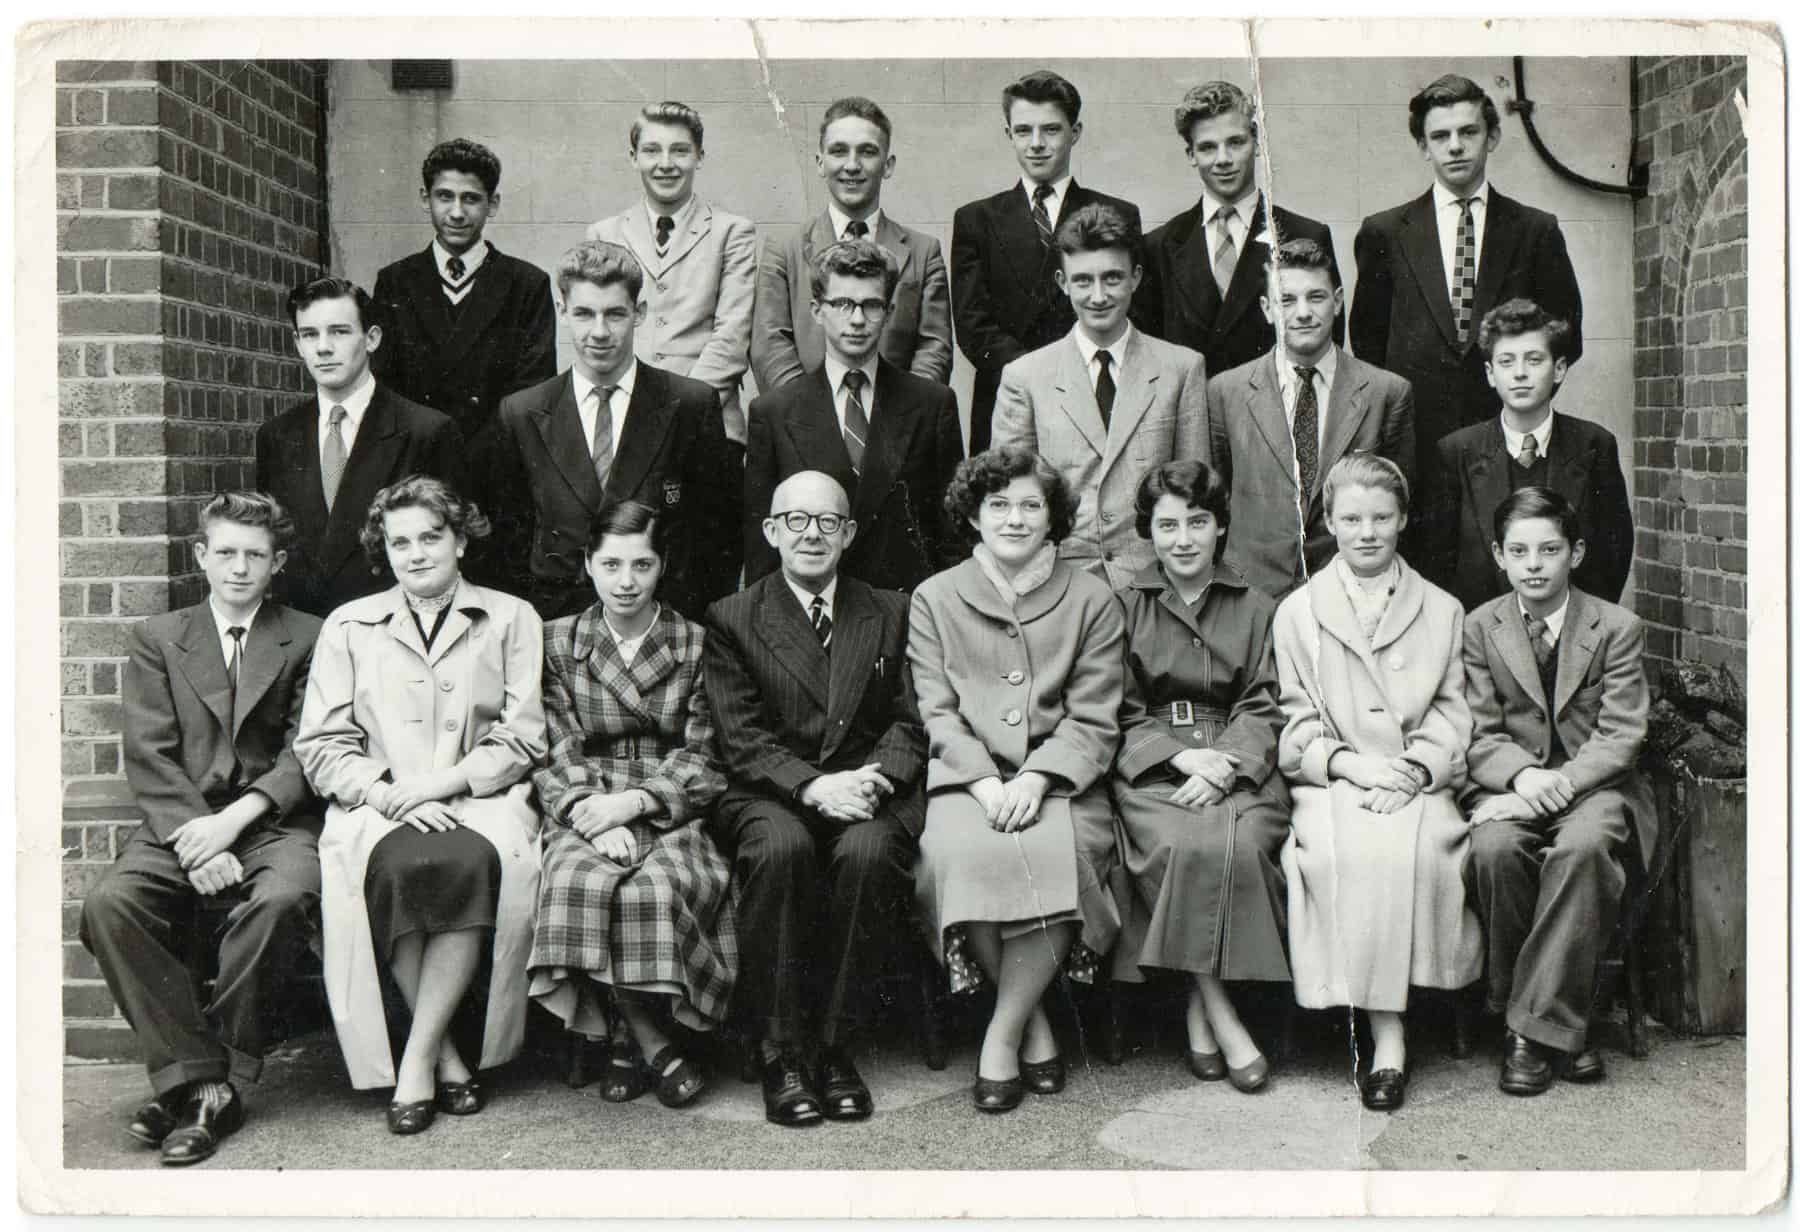 Gary: This is a group photograph from 1956 when I started as an apprentice at Chance Brothers in Smethwick. All the apprentices who were taken on at that particular time had their photograph taken with a managing director. There were all different trades and office staff. I am in the middle row, 3rd from the left.